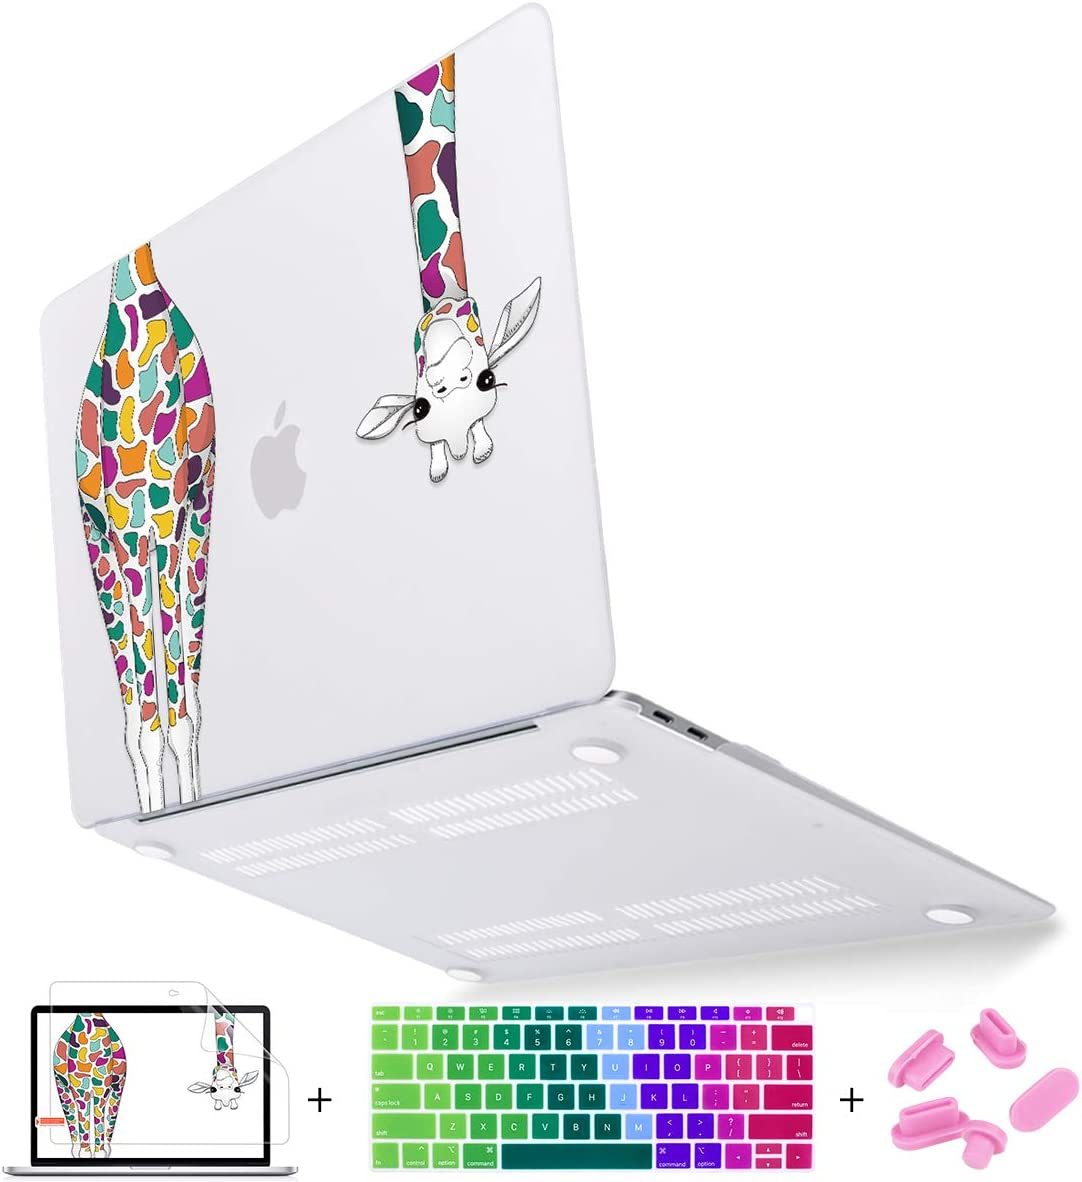 Mektron for MacBook Air 13 Inch Case 2020 2019 2018 Release A1932 A2179,Colorful Giraffe Soft-Touch Frosted See Through Hard Shell Cover Air 13.3 inch Retina Display & Touch ID Laptop Case